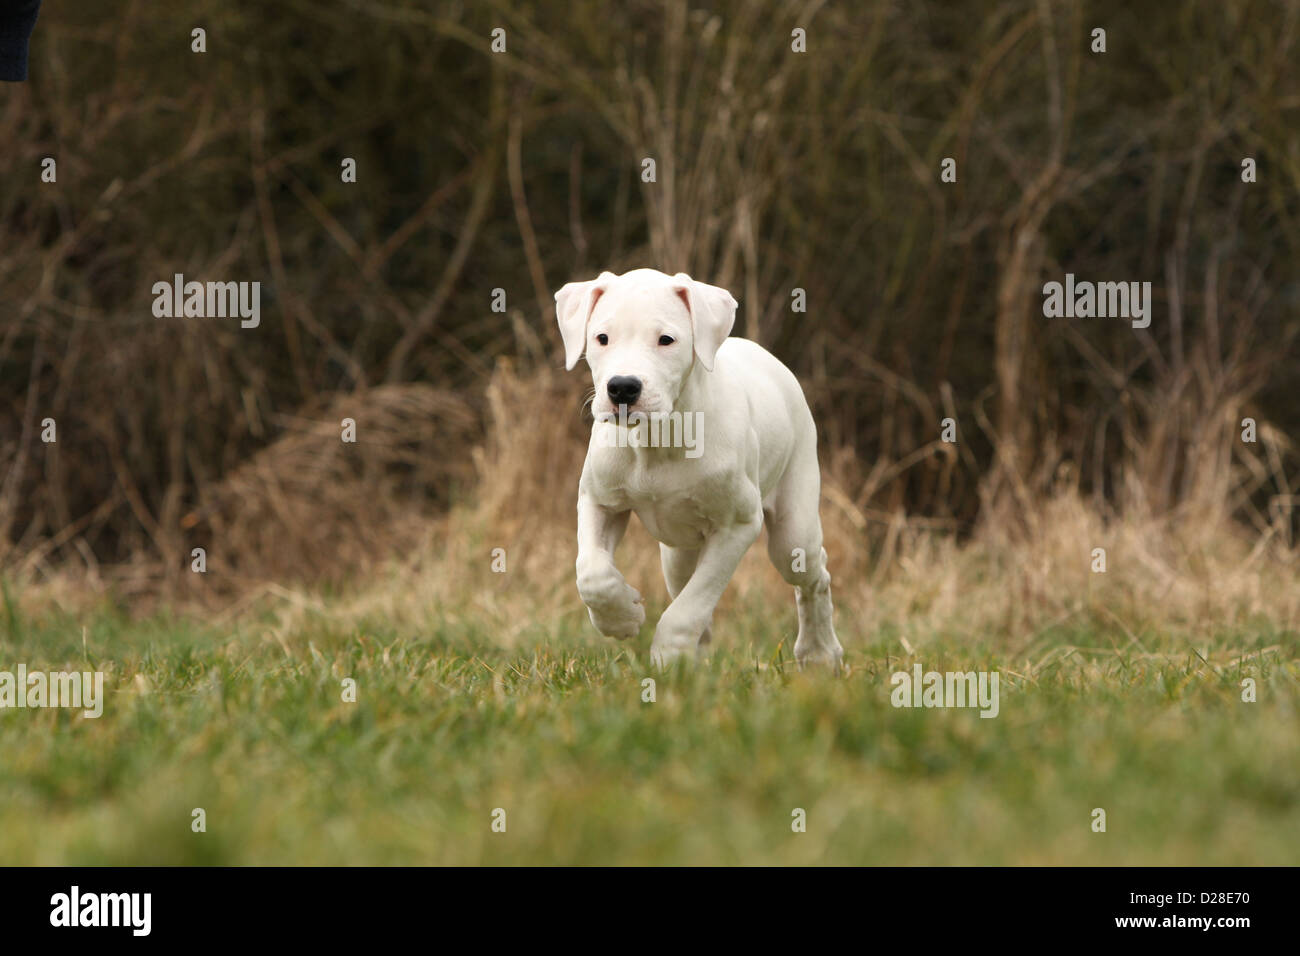 Chien Dogo Argentino / Dogue Argentin (oreilles naturelles) puppy waling Photo Stock